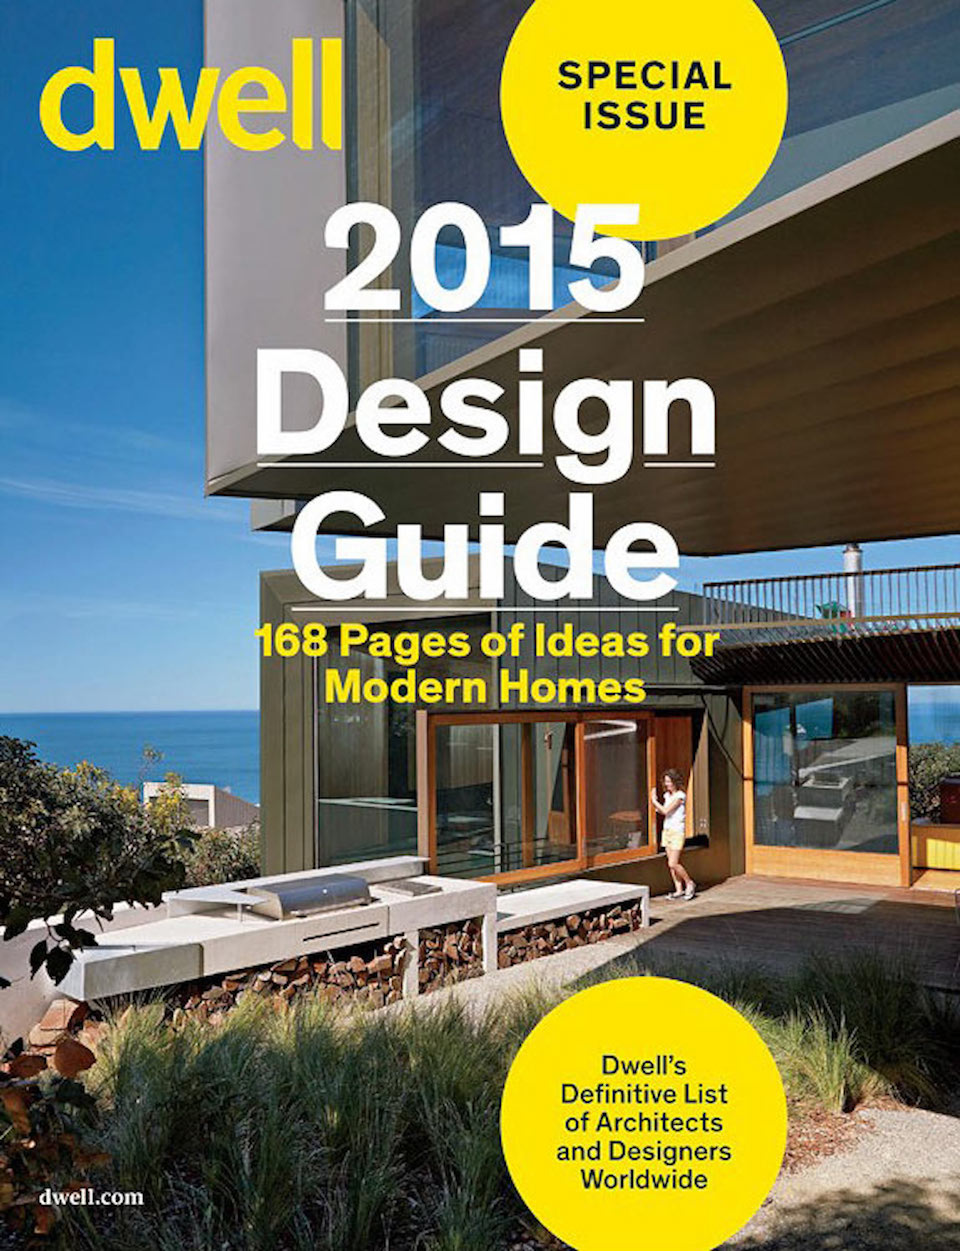 Dwell magazine Design Guide featuring Renée del Gaudio Architecture.